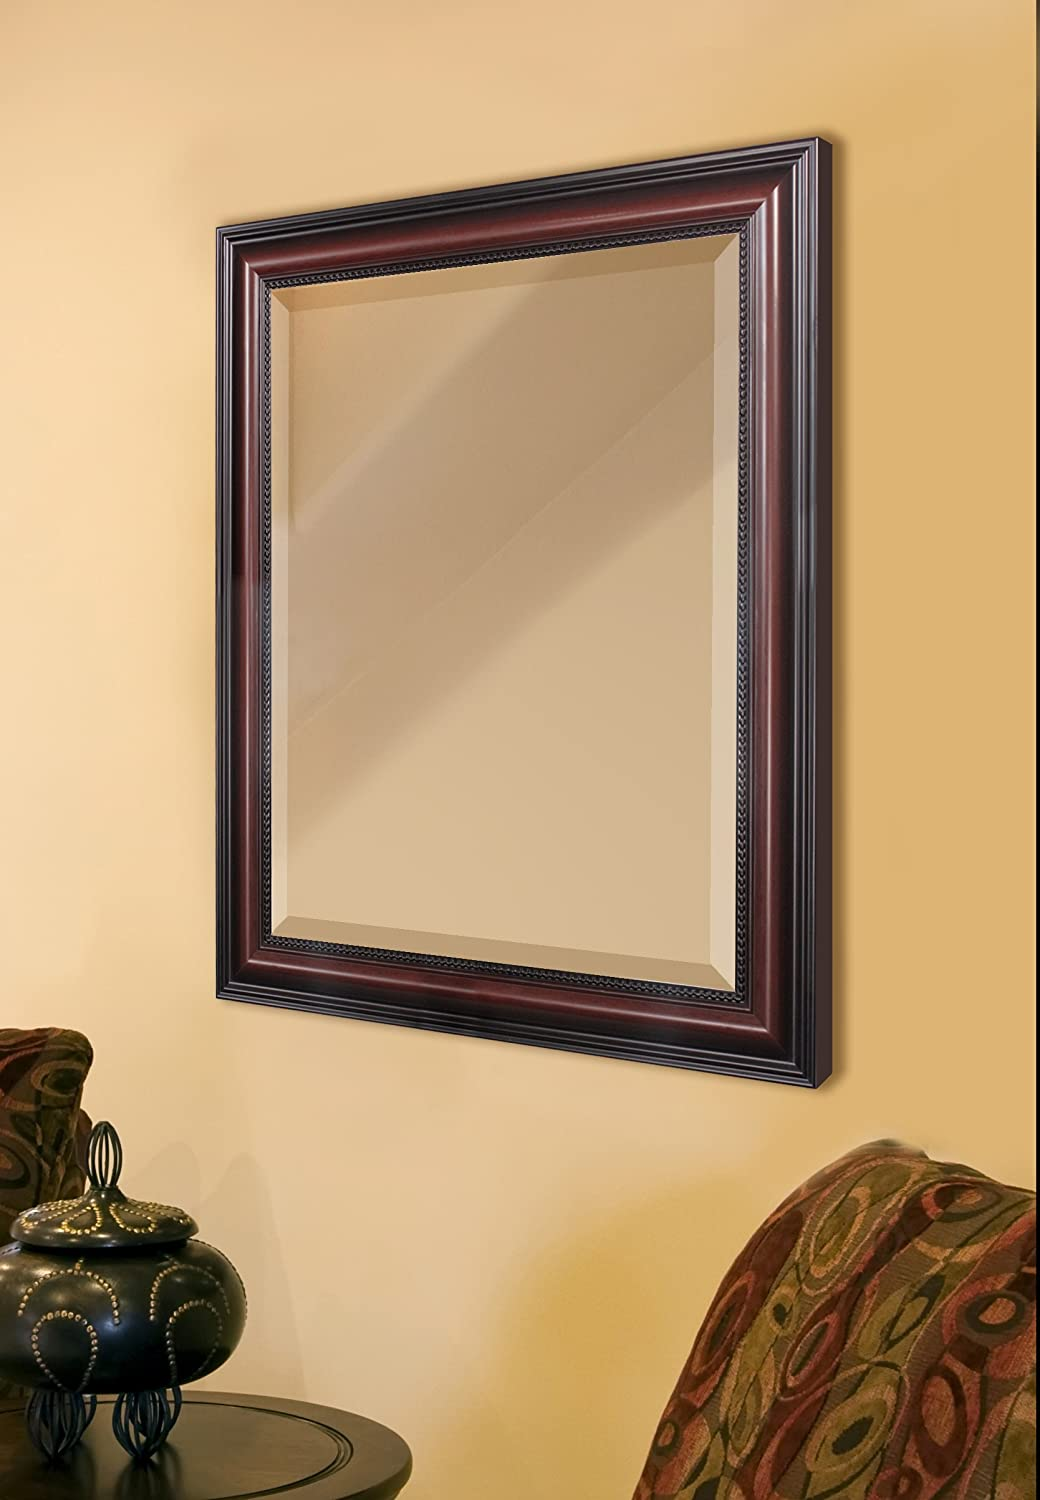 Amazon.com: Head West Traditional Cherry Wall Mirror, 28-Inch by 34 ...